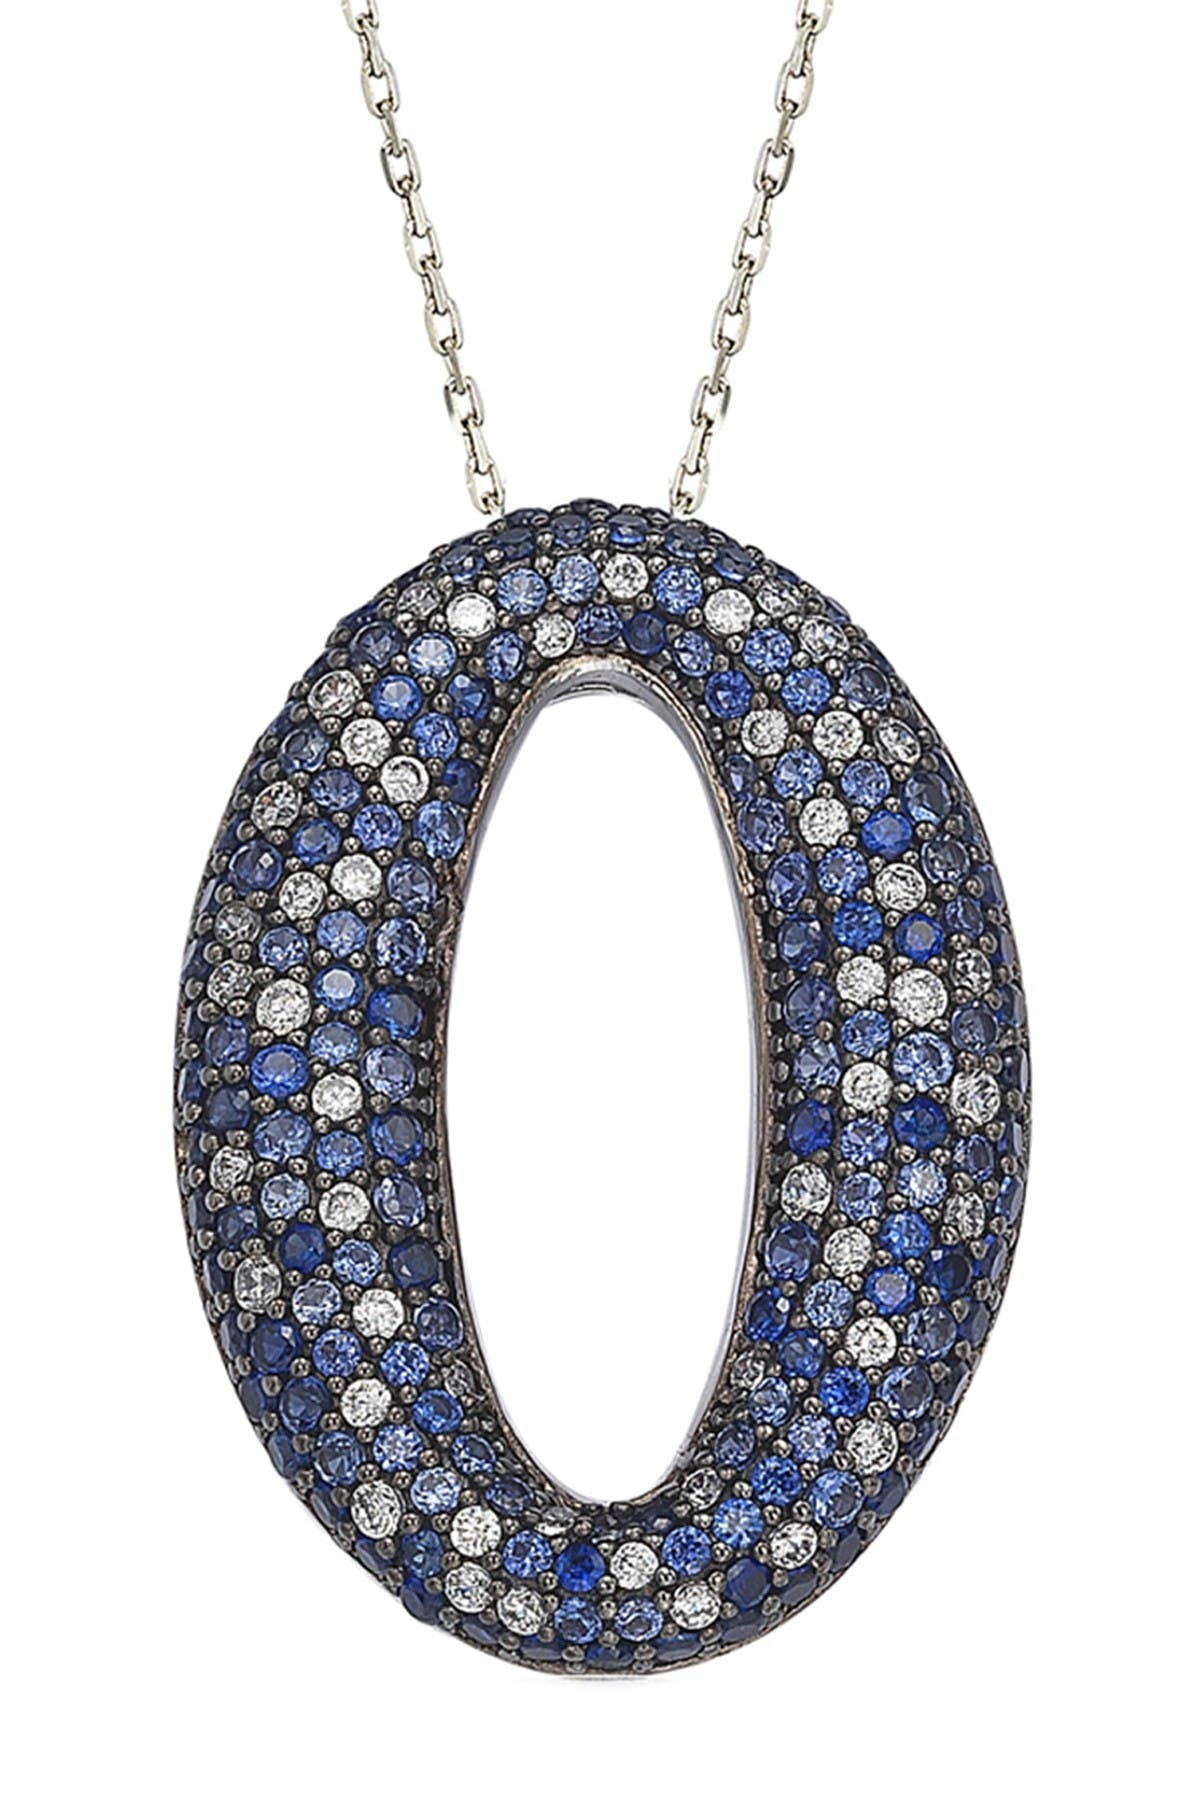 Image of Suzy Levian Two-Tone Blue Sapphire, Created White Sapphire & Brown Diamond Oval Pendant Necklace